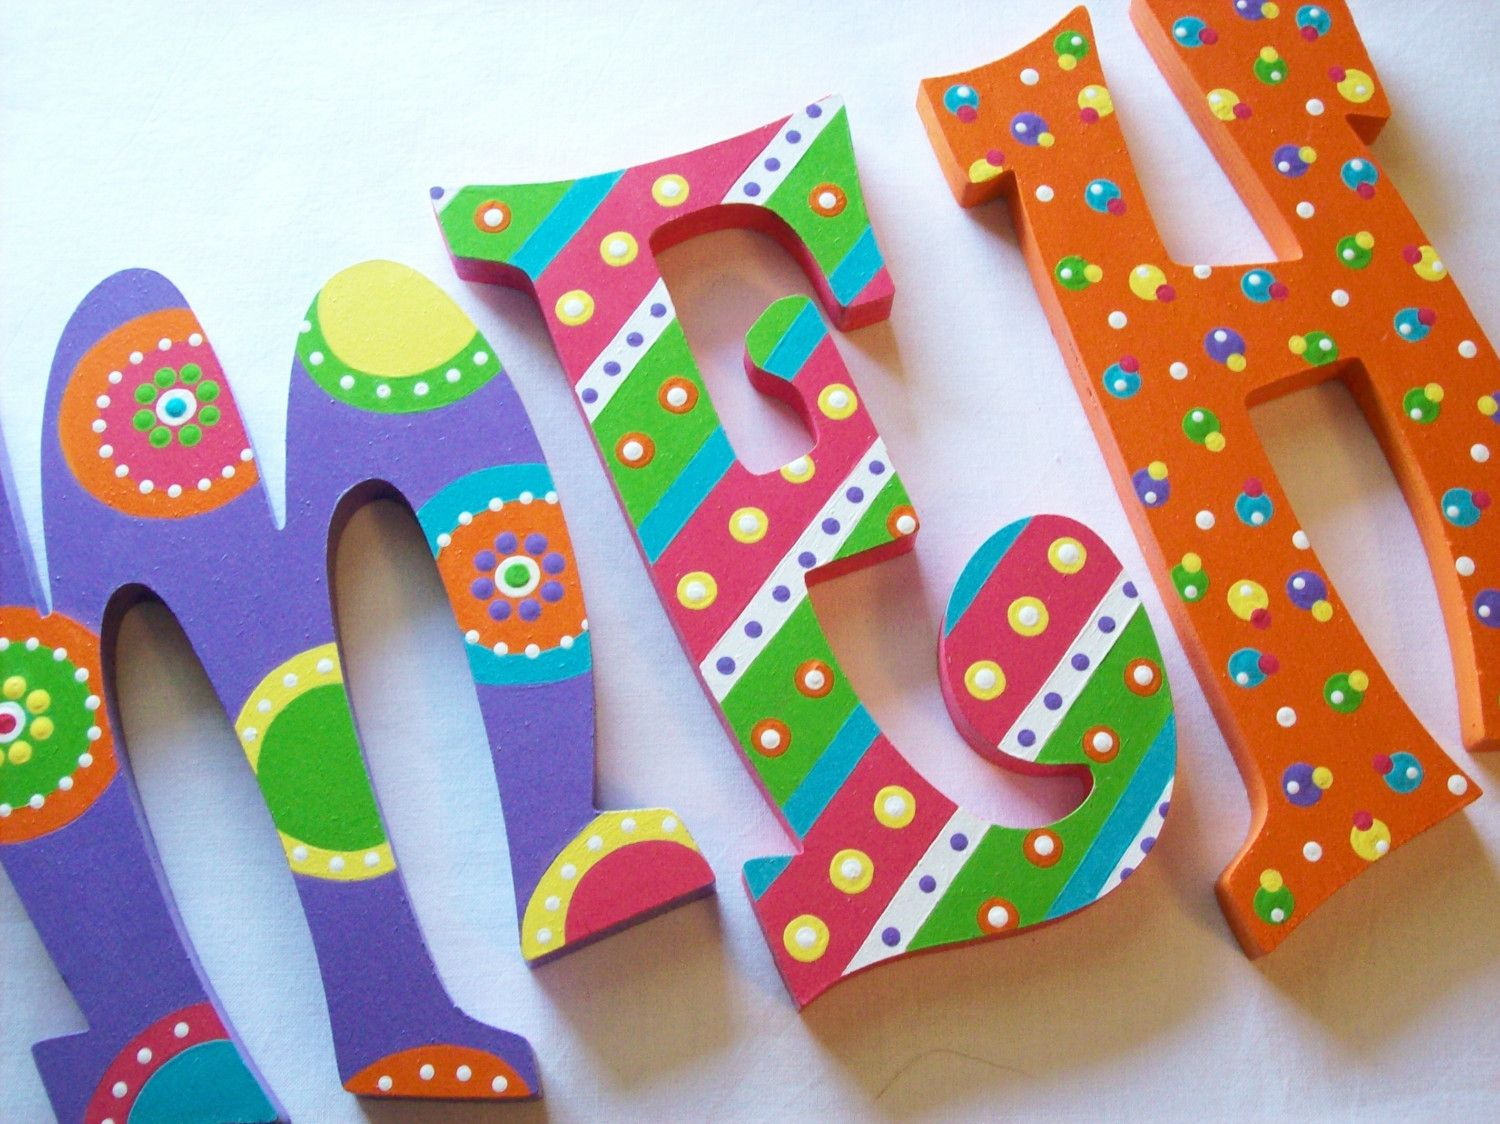 Wooden letters for crafts - Download